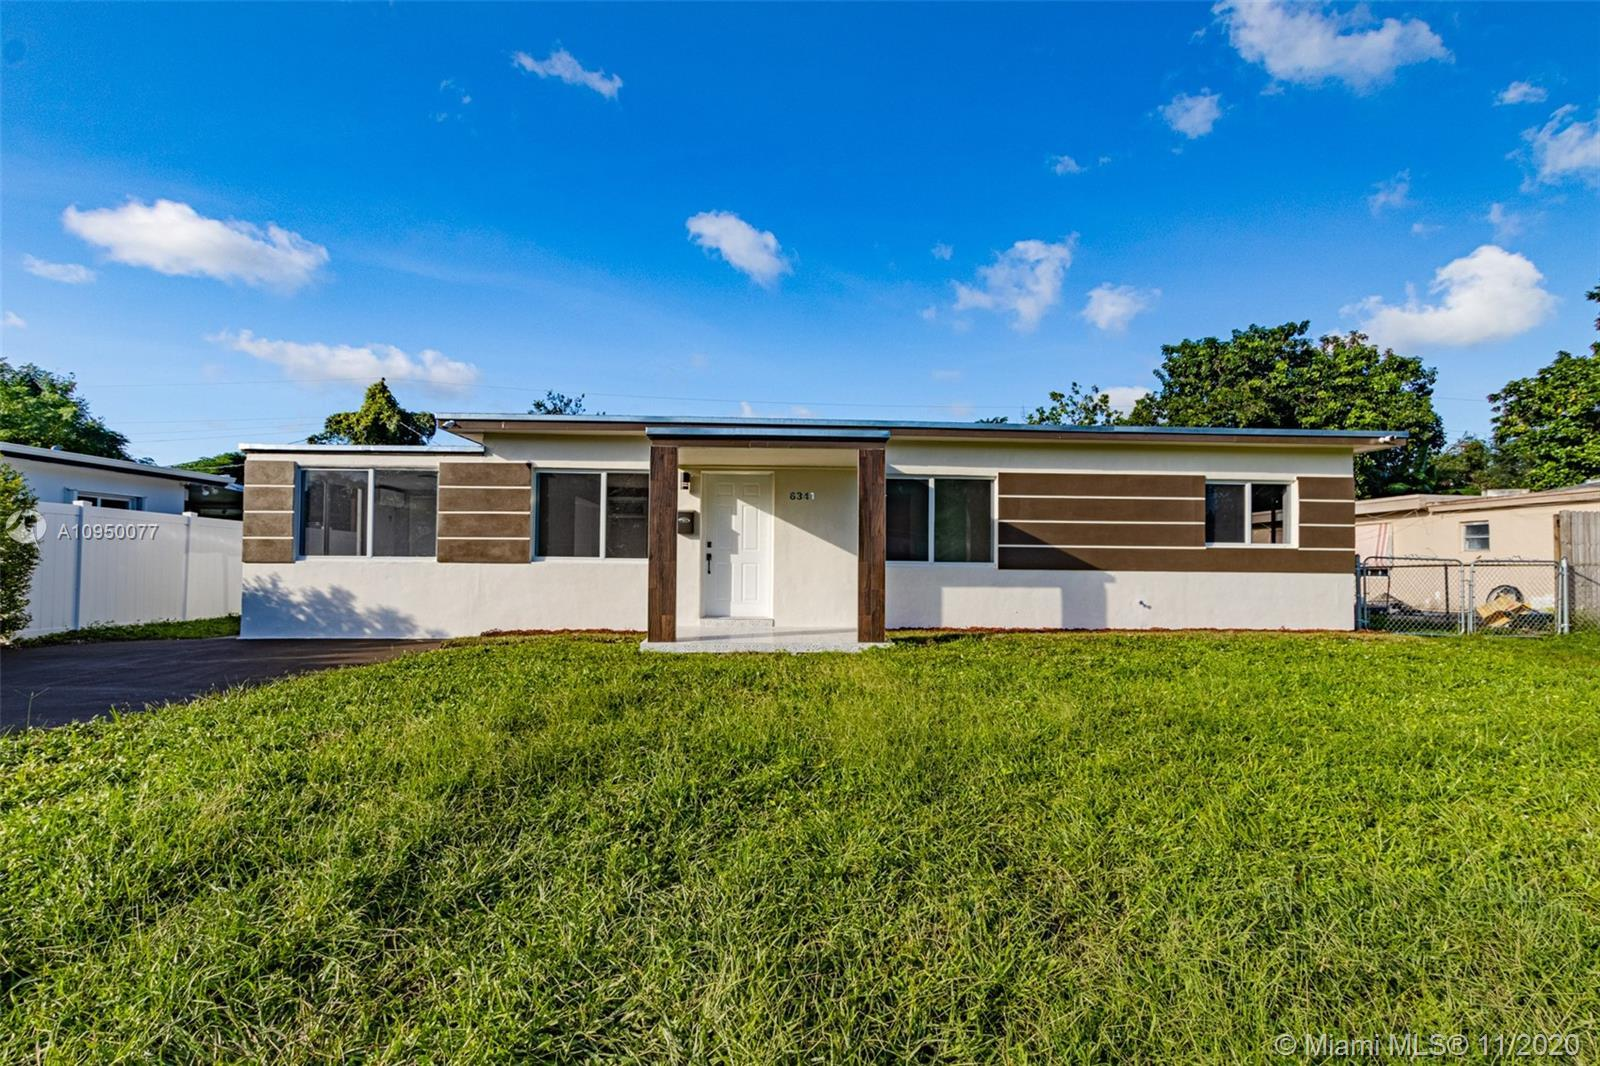 APPROXIMATELY 1500 SQFT HOUSE THAT IS SUPER MODERN AND REMODELED FROM TOP TO BOTTOM IN GREAT AREA NE